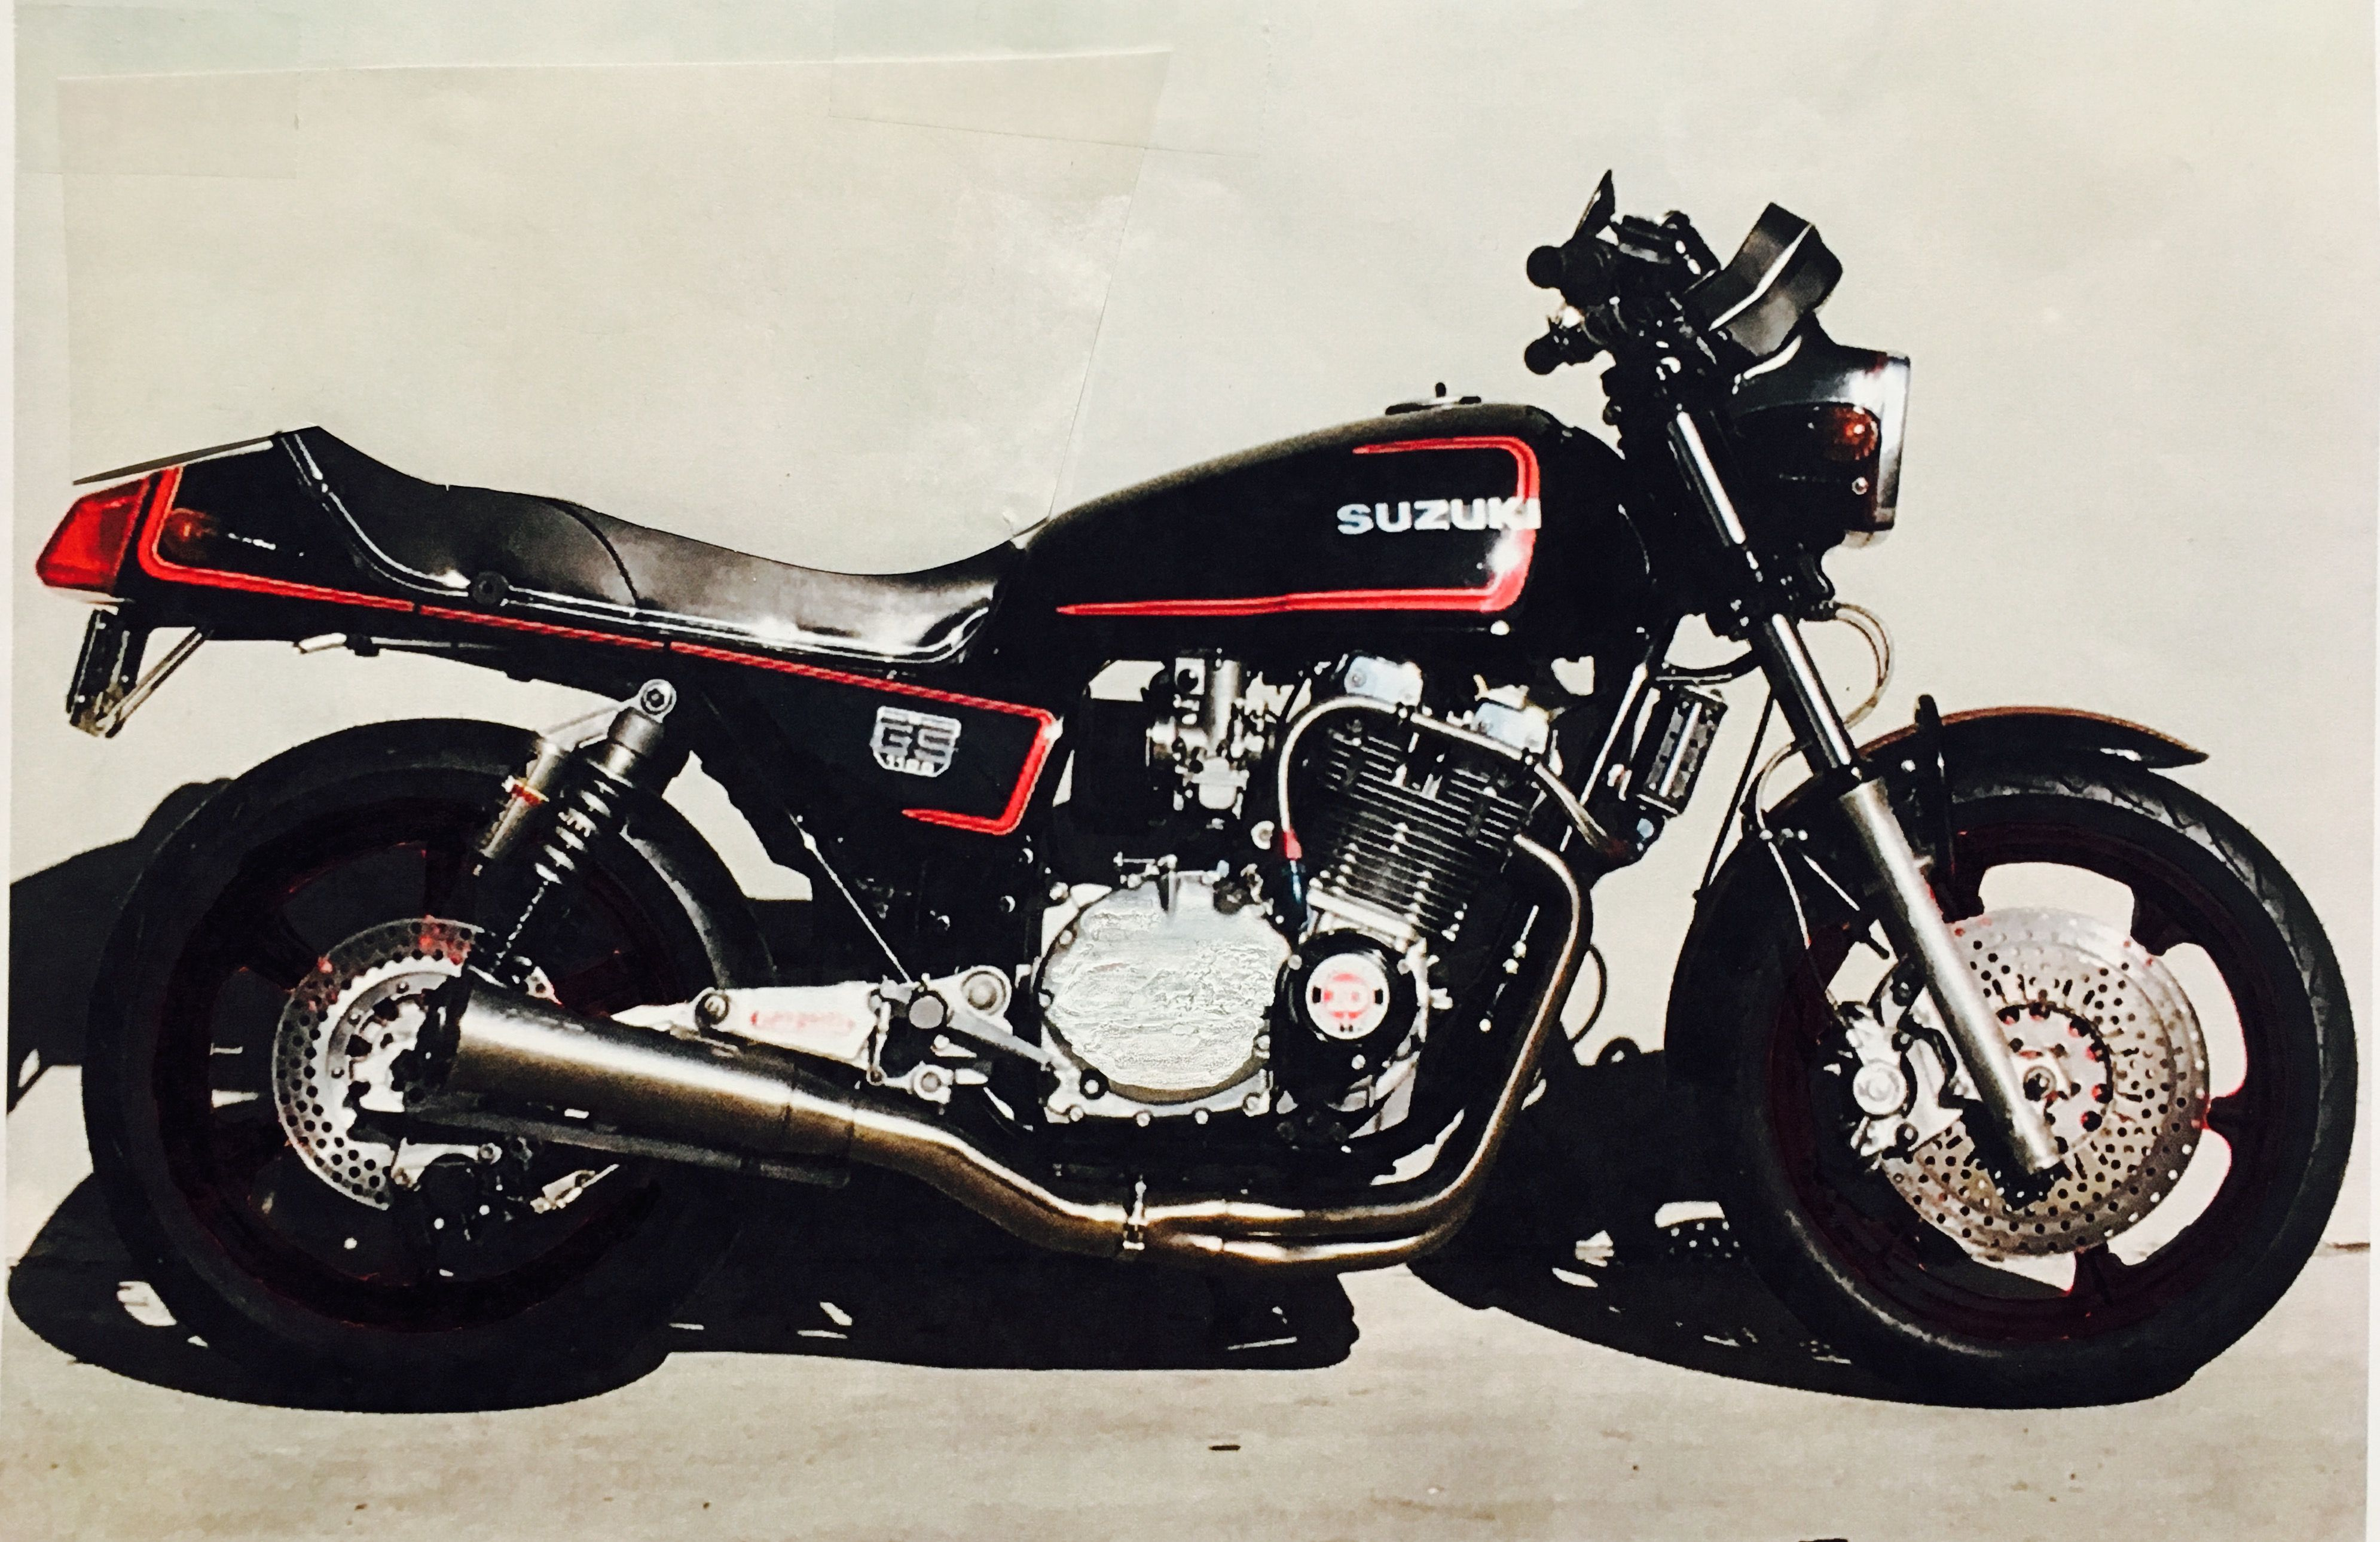 Back To Black Gs1100e With Images Suzuki Motorcycle